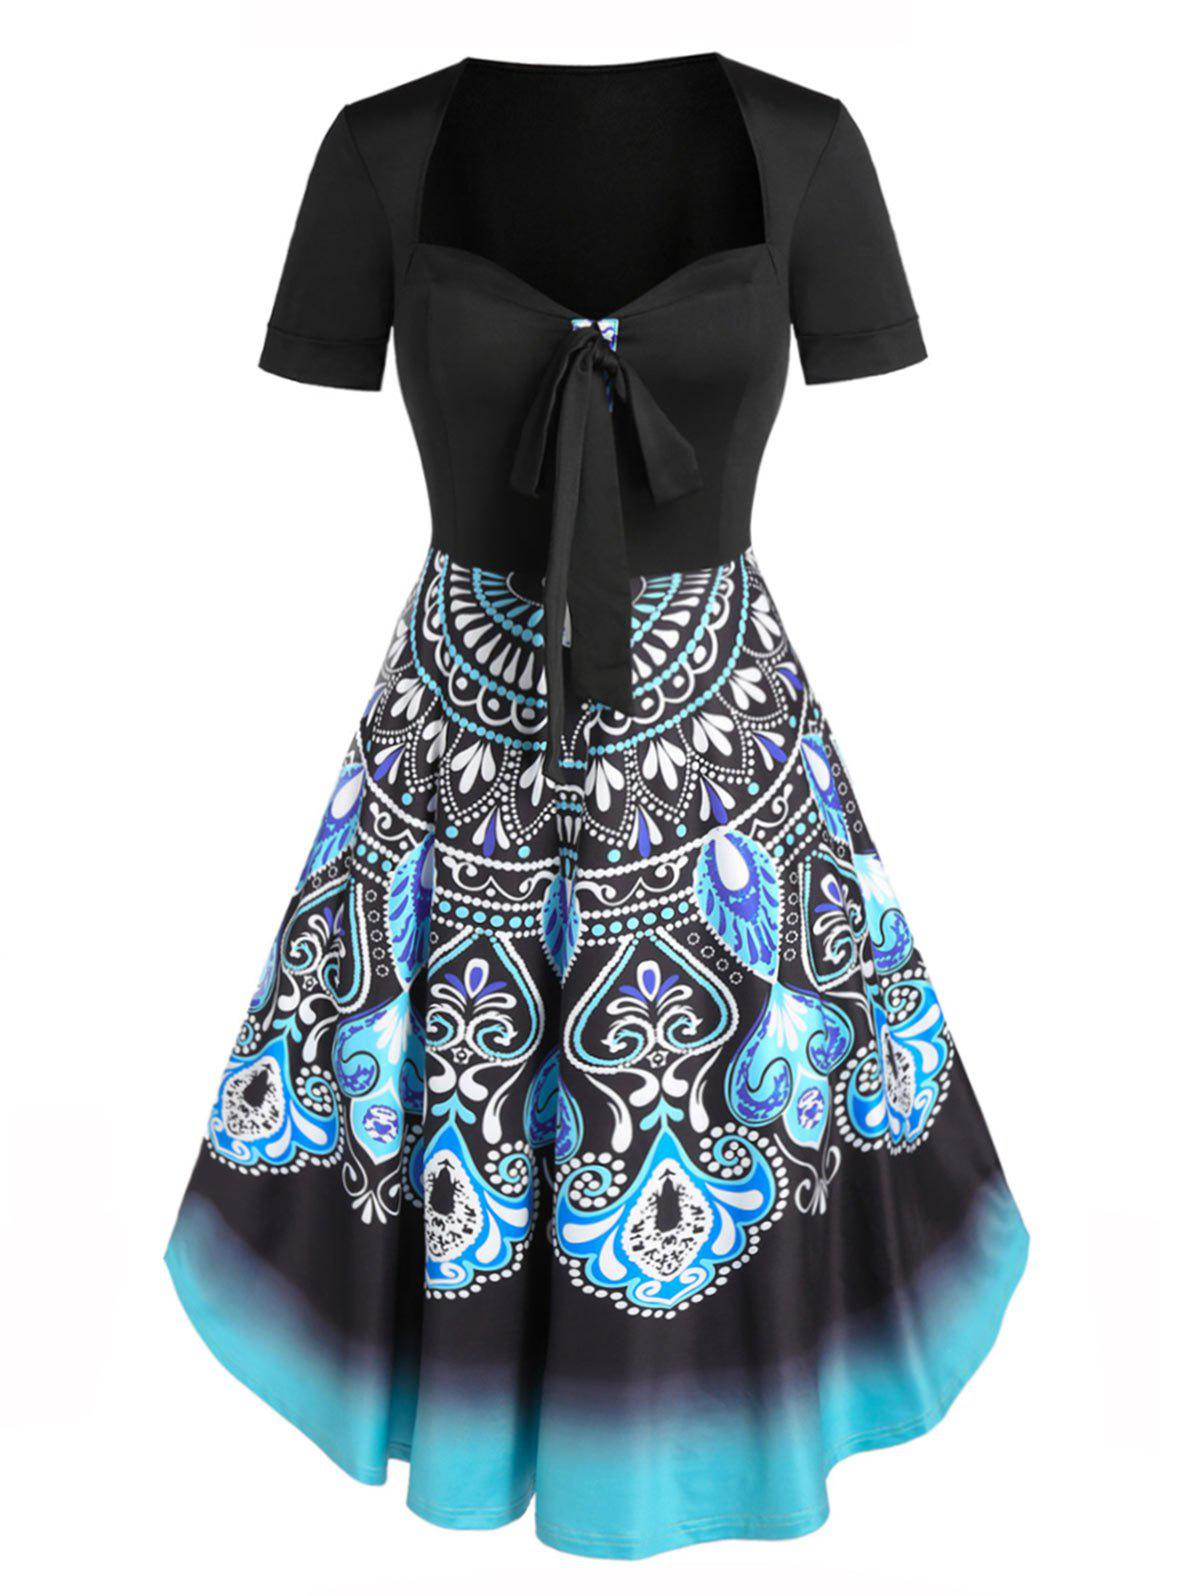 Affordable Bohemian Floral Print Bowknot Fit And Flare Dress